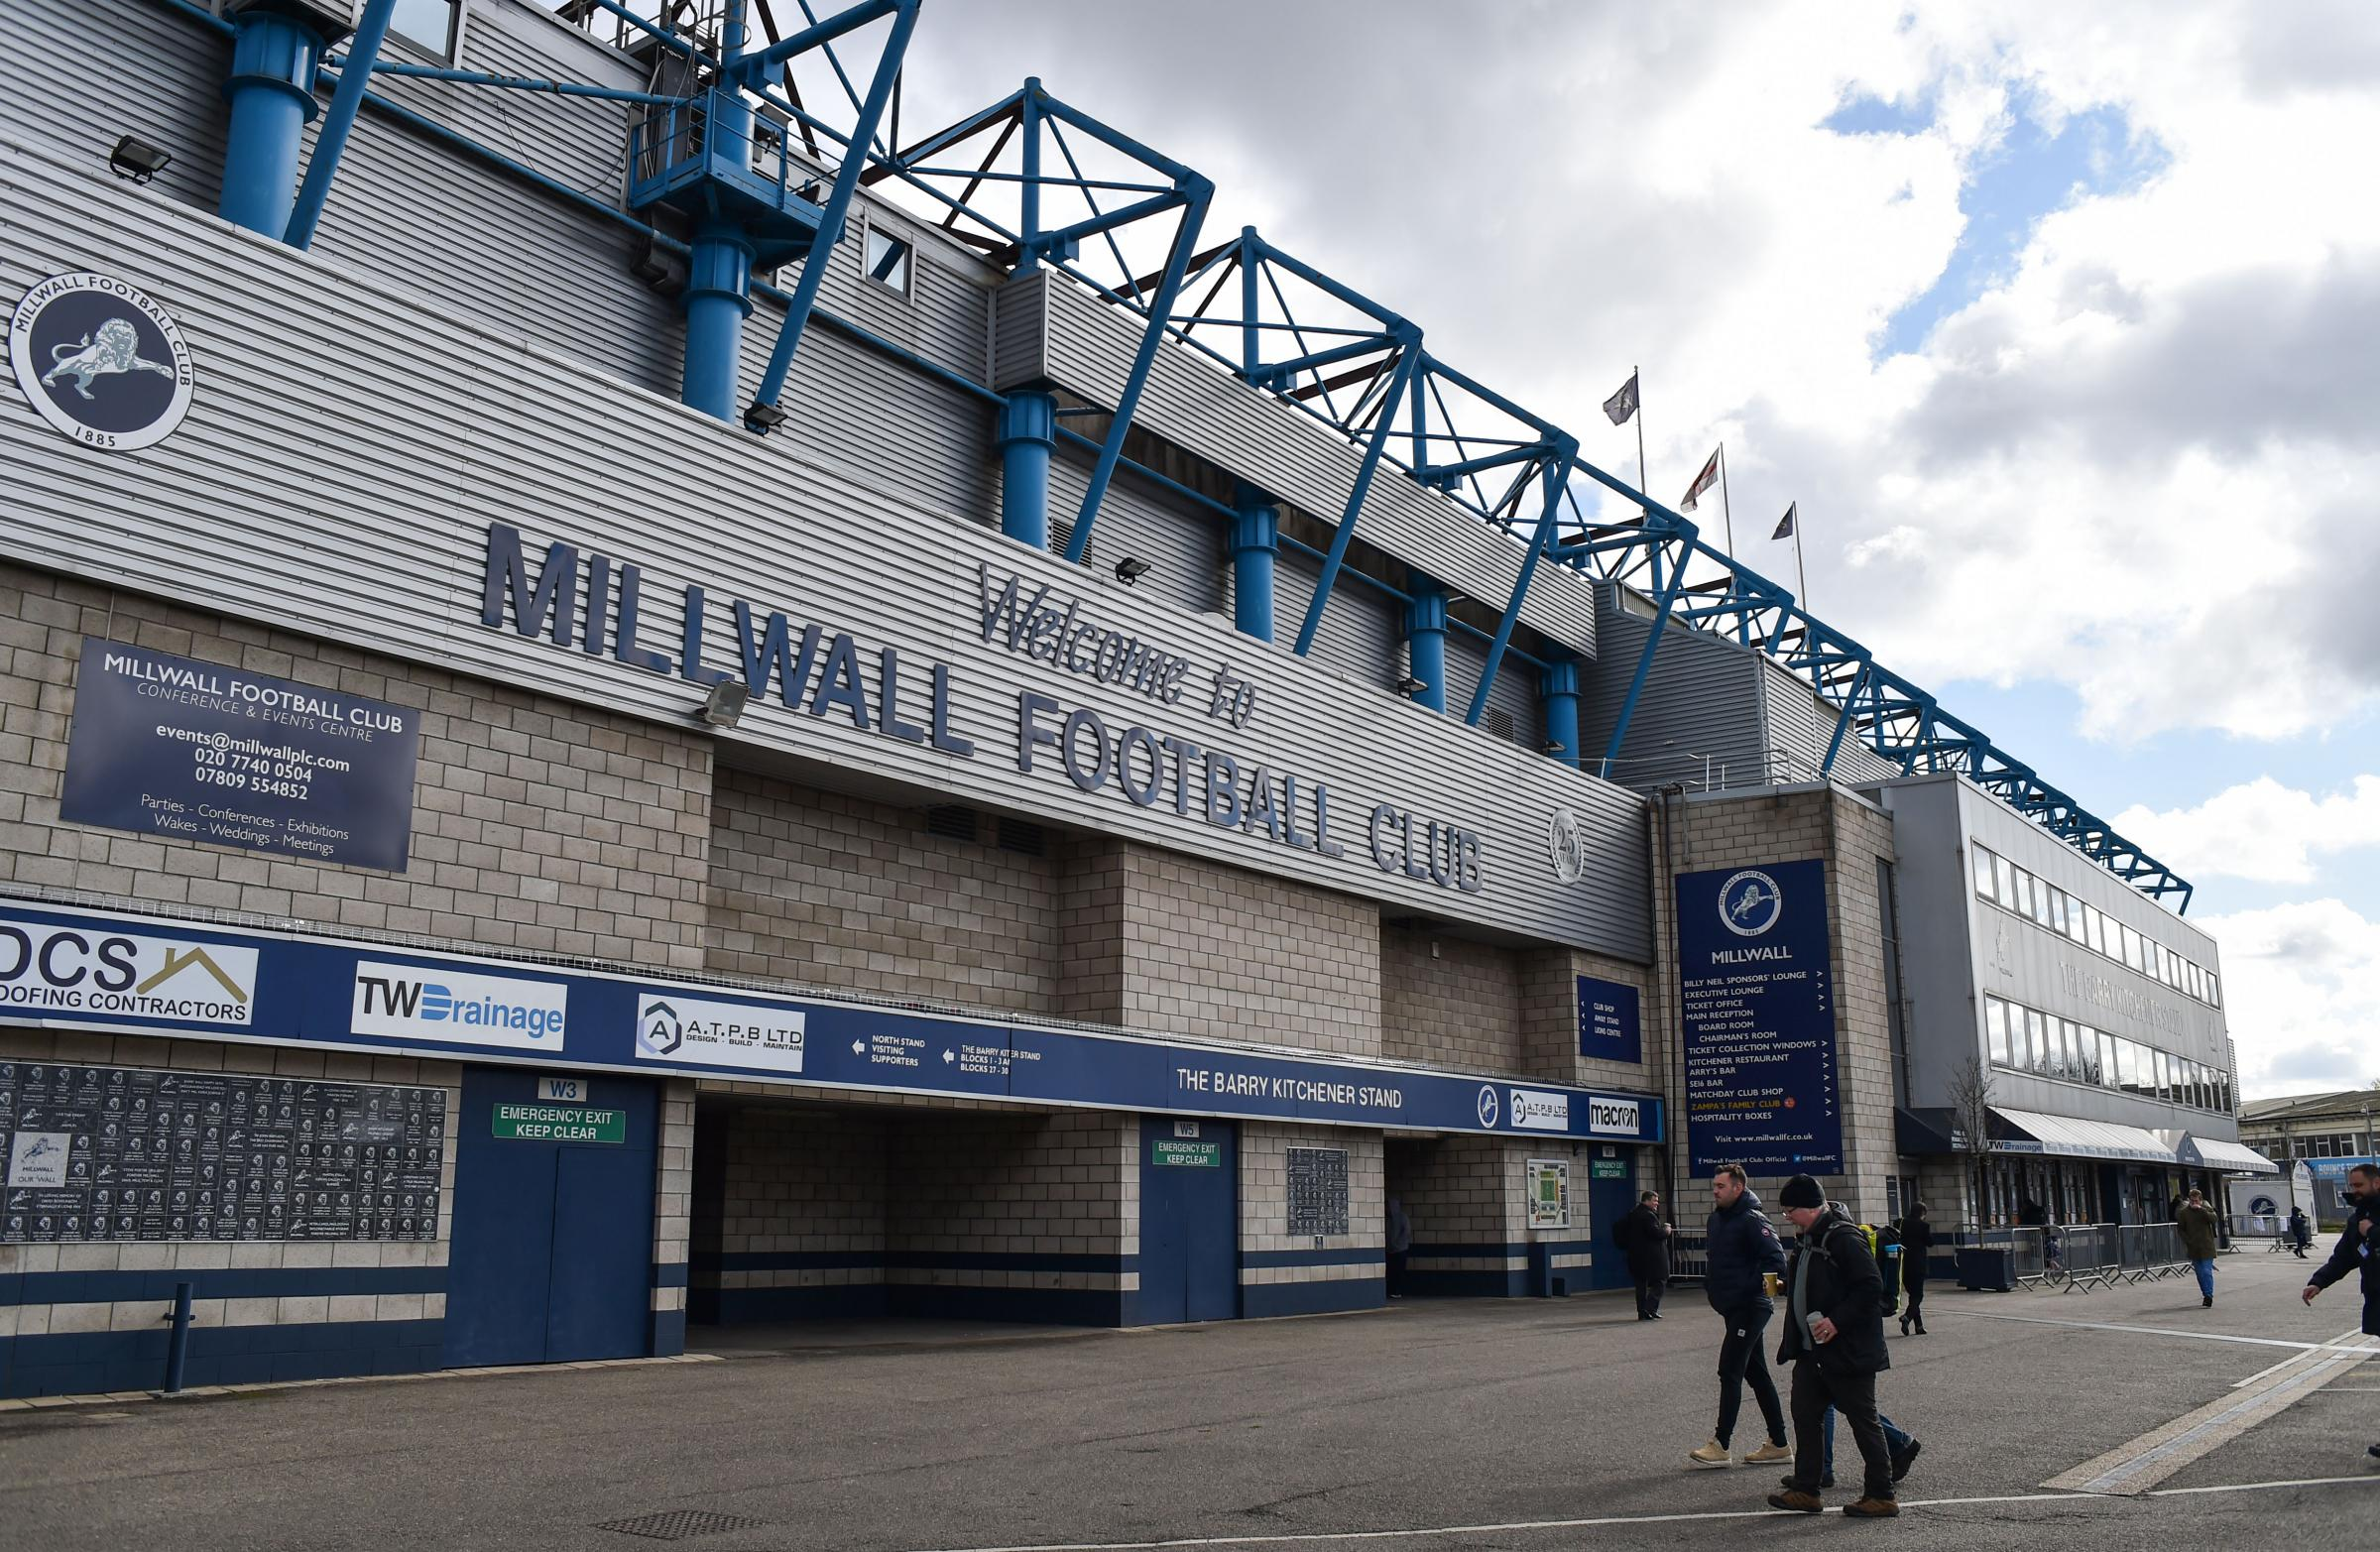 LIVE: Millwall v Brighton and Hove Albion